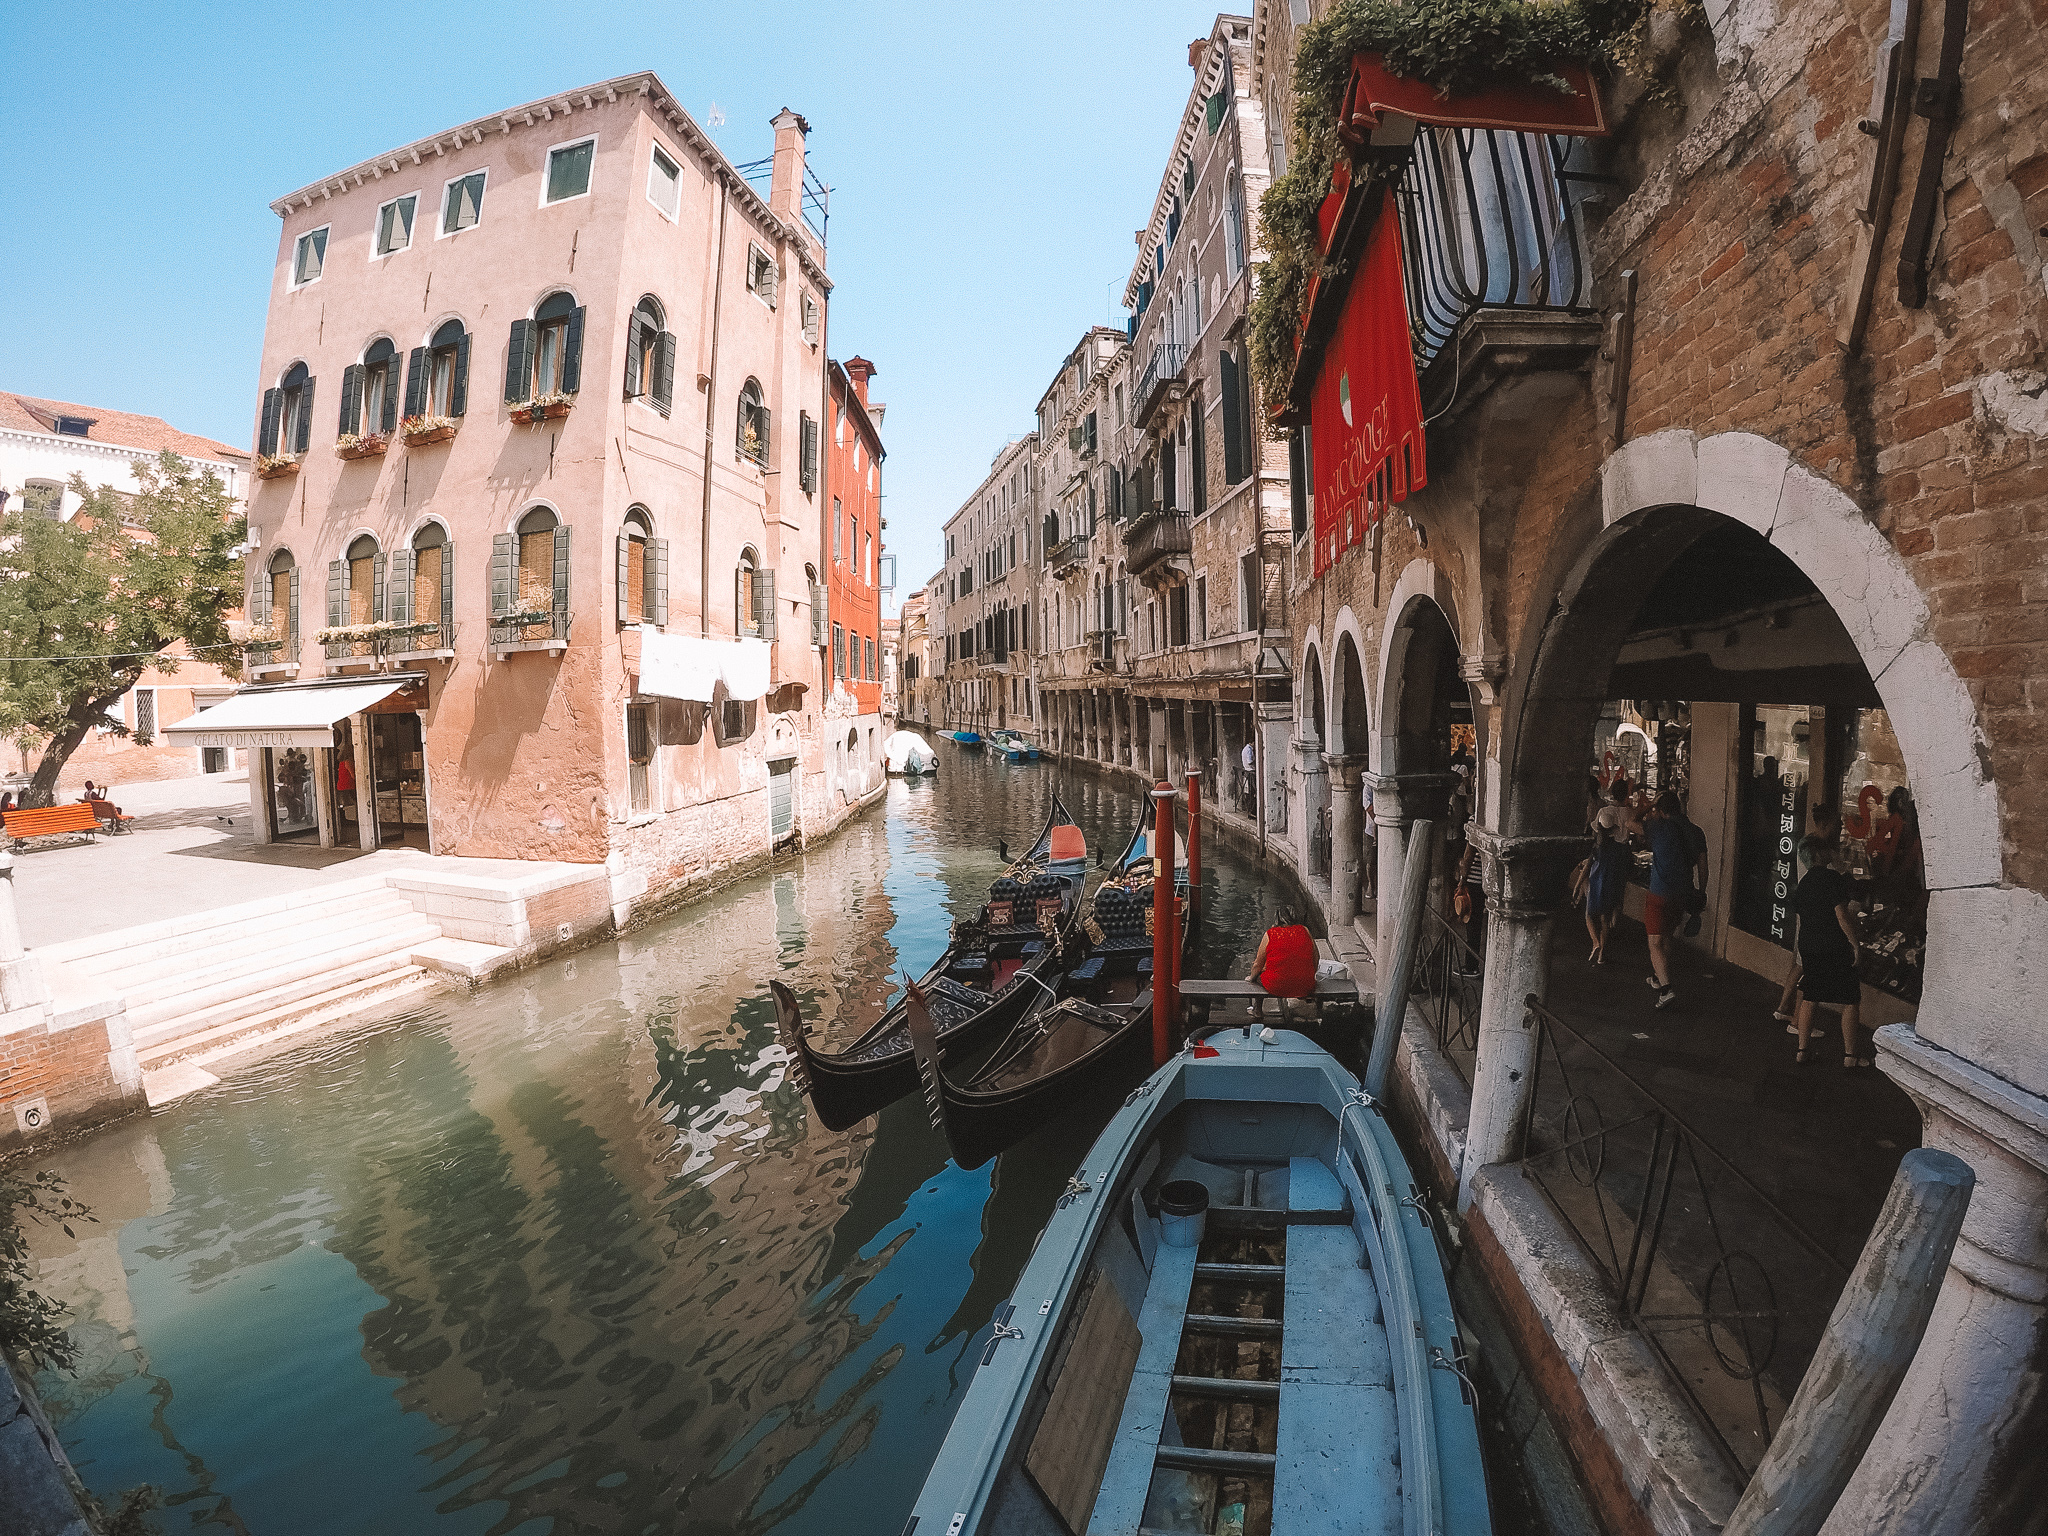 Photo Journal: Exploring the canals of Venice, Italy